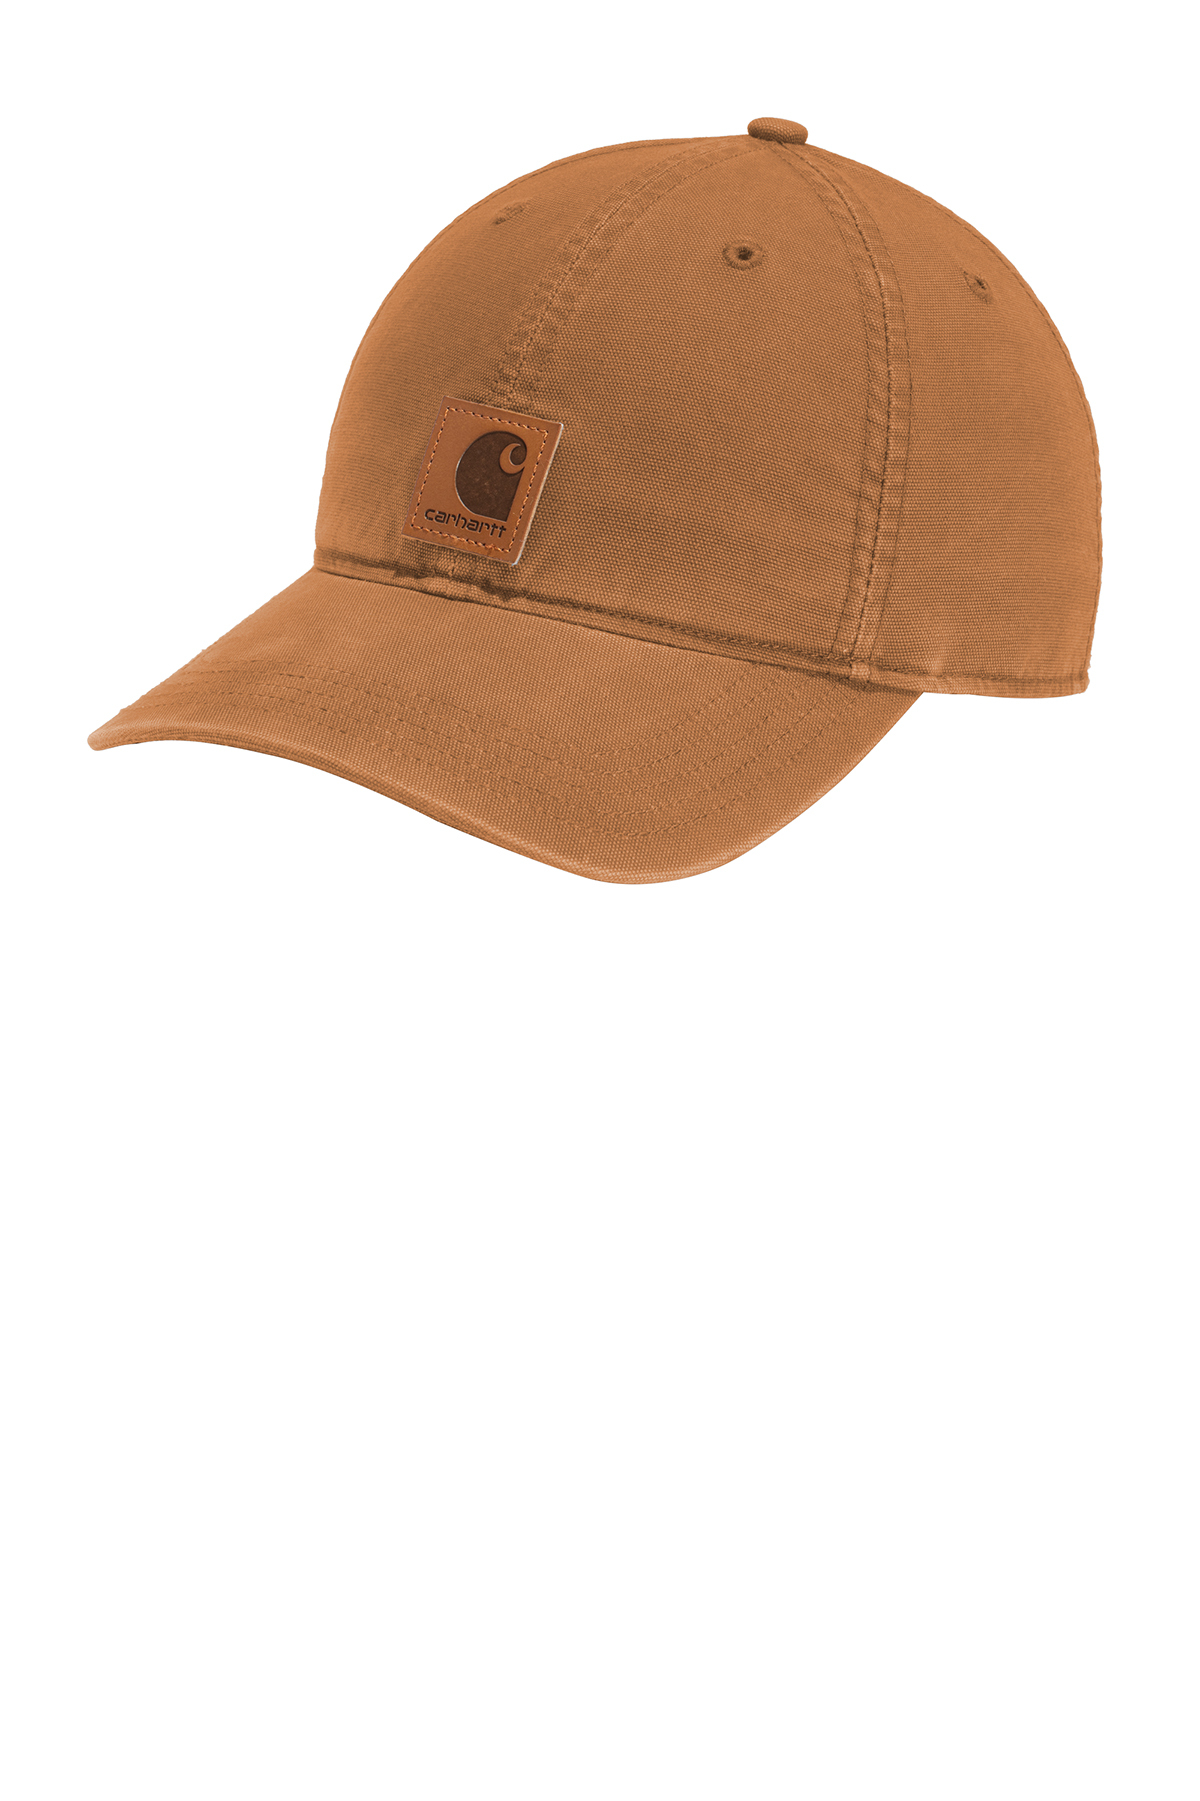 Carhartt Dark Coffee